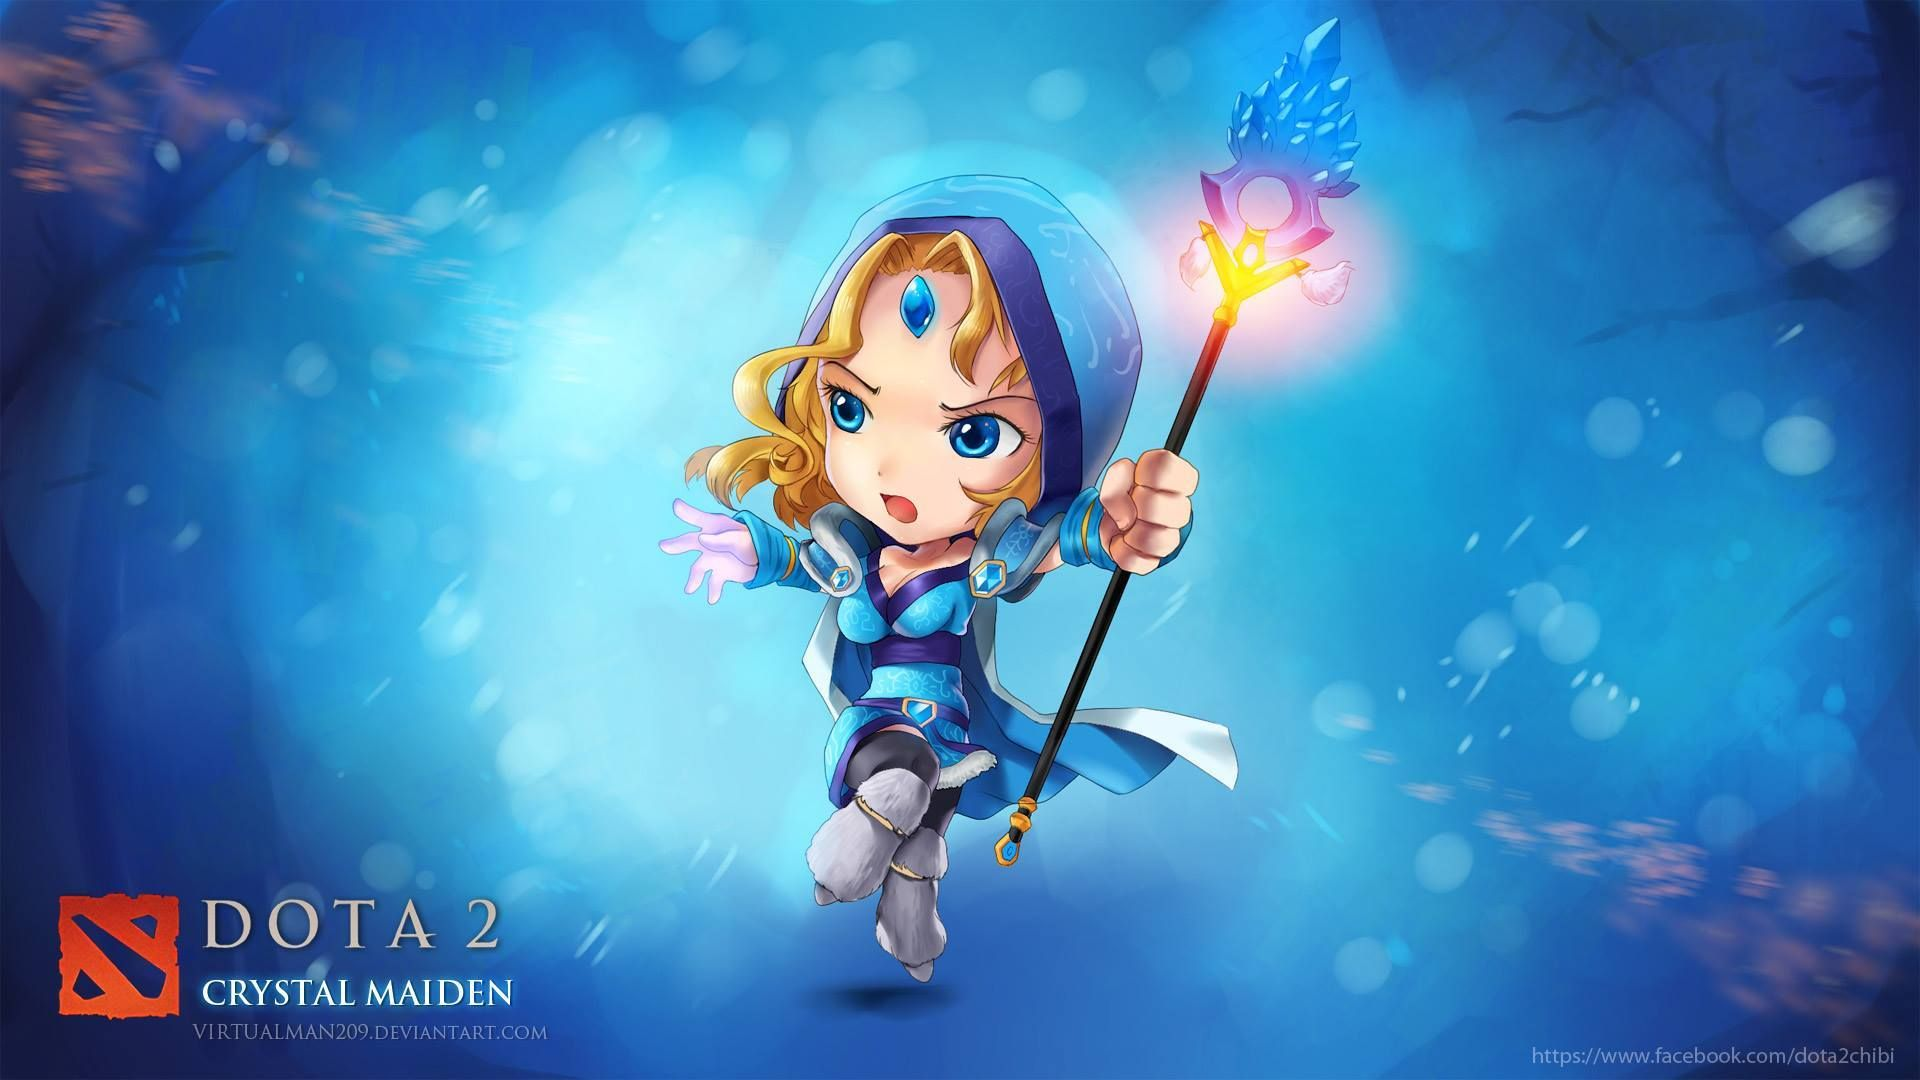 Crystal Maiden Dota 2 Sven Wallpaper Popular Desktop Wallpaper